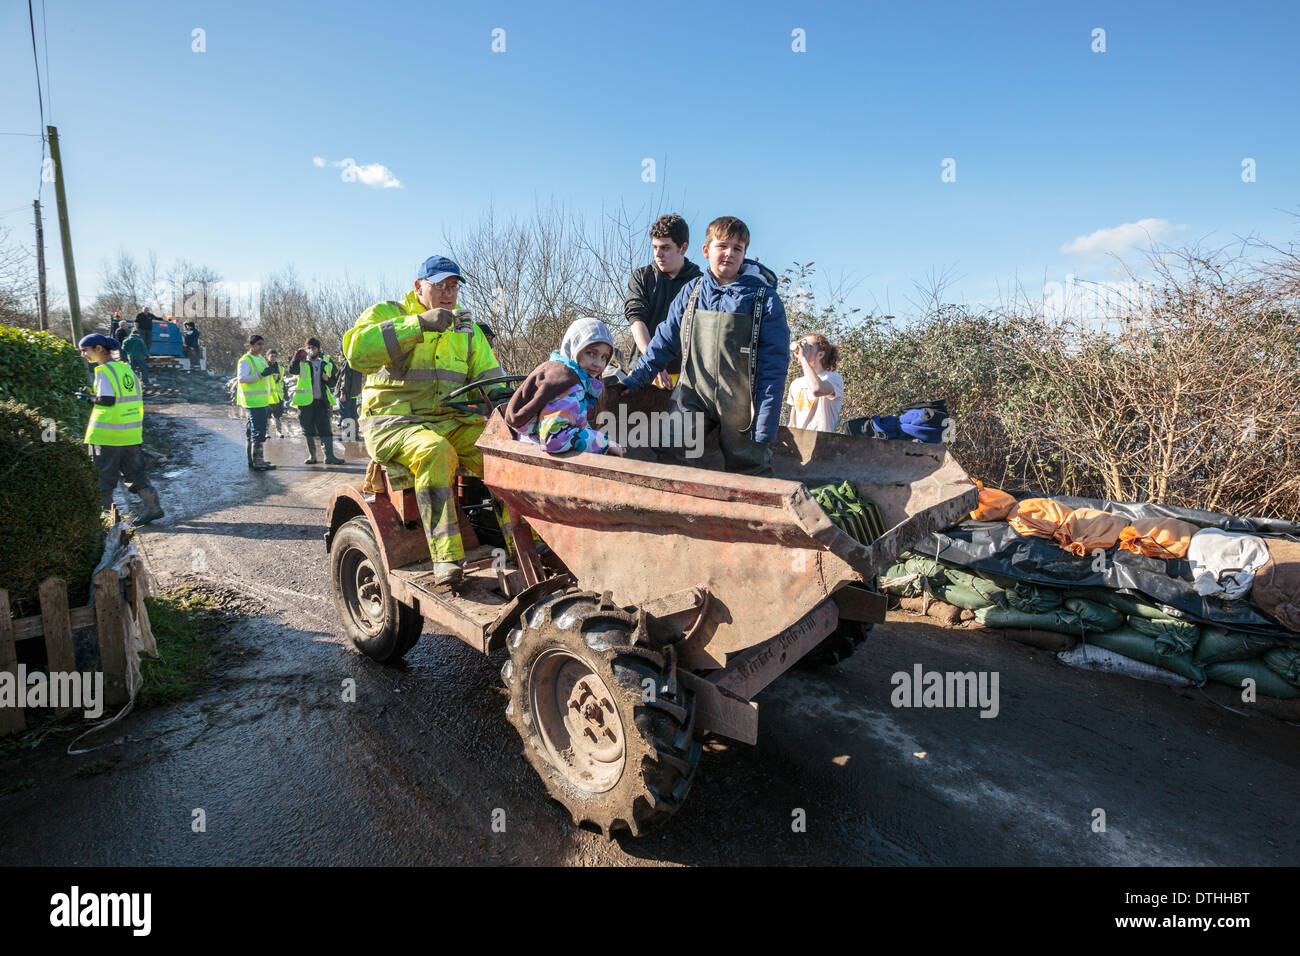 Volunteer aid workers help distribute supplies in the flooded village of Moorland on the Somerset Levels. - Stock Image